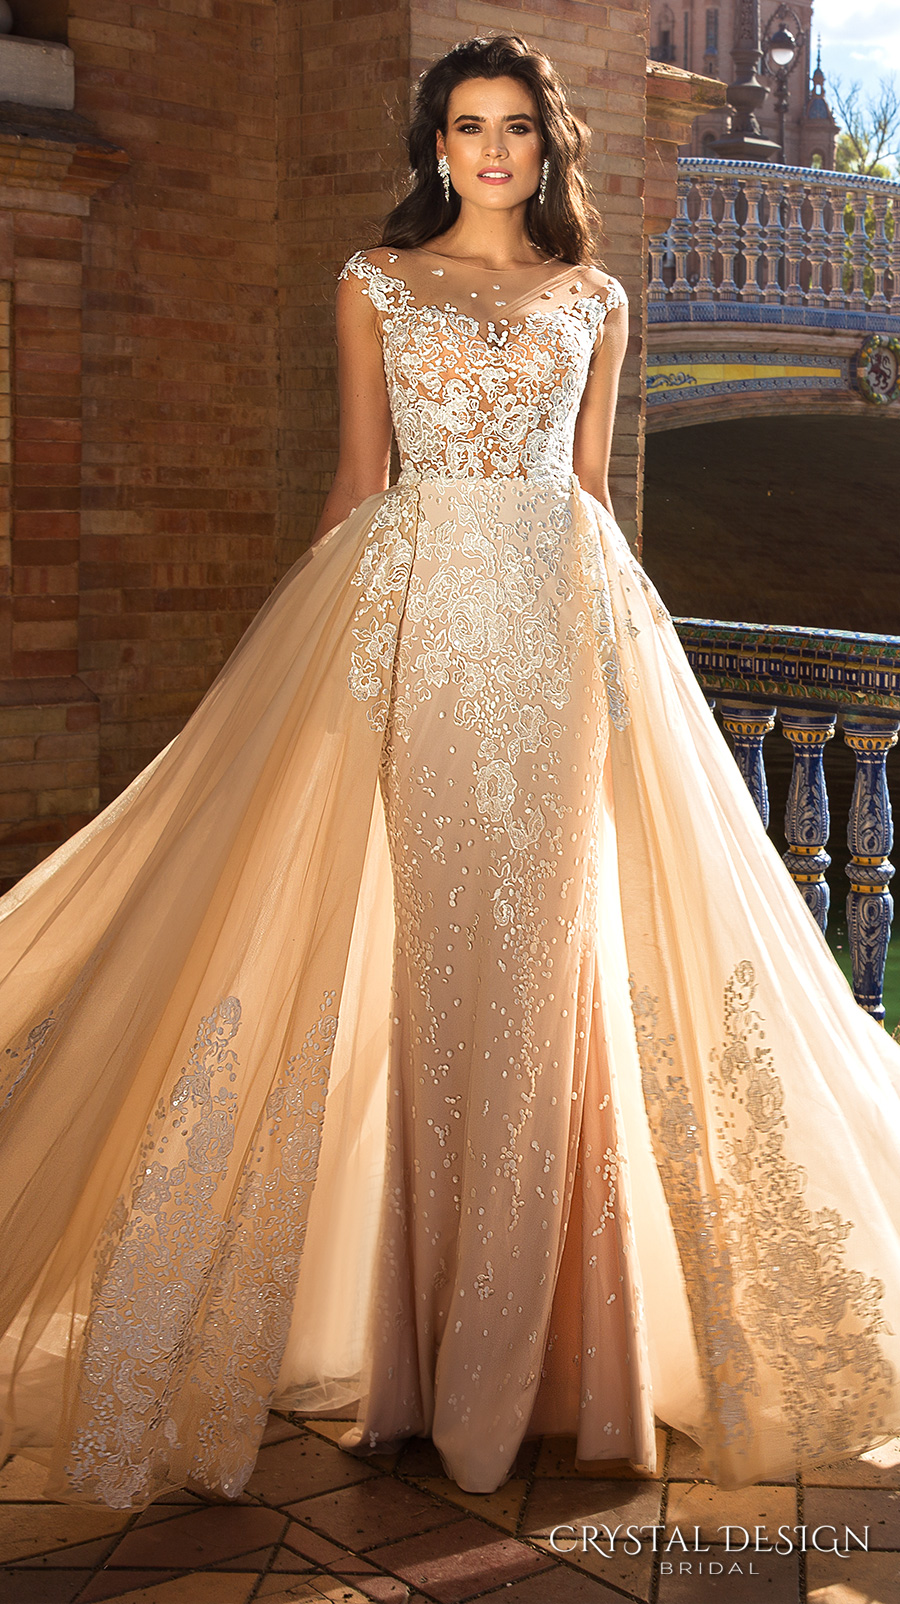 crystal wedding dresses Glamorous Ball Gown Wedding Dresses With Floor Length Crystals Embellishment